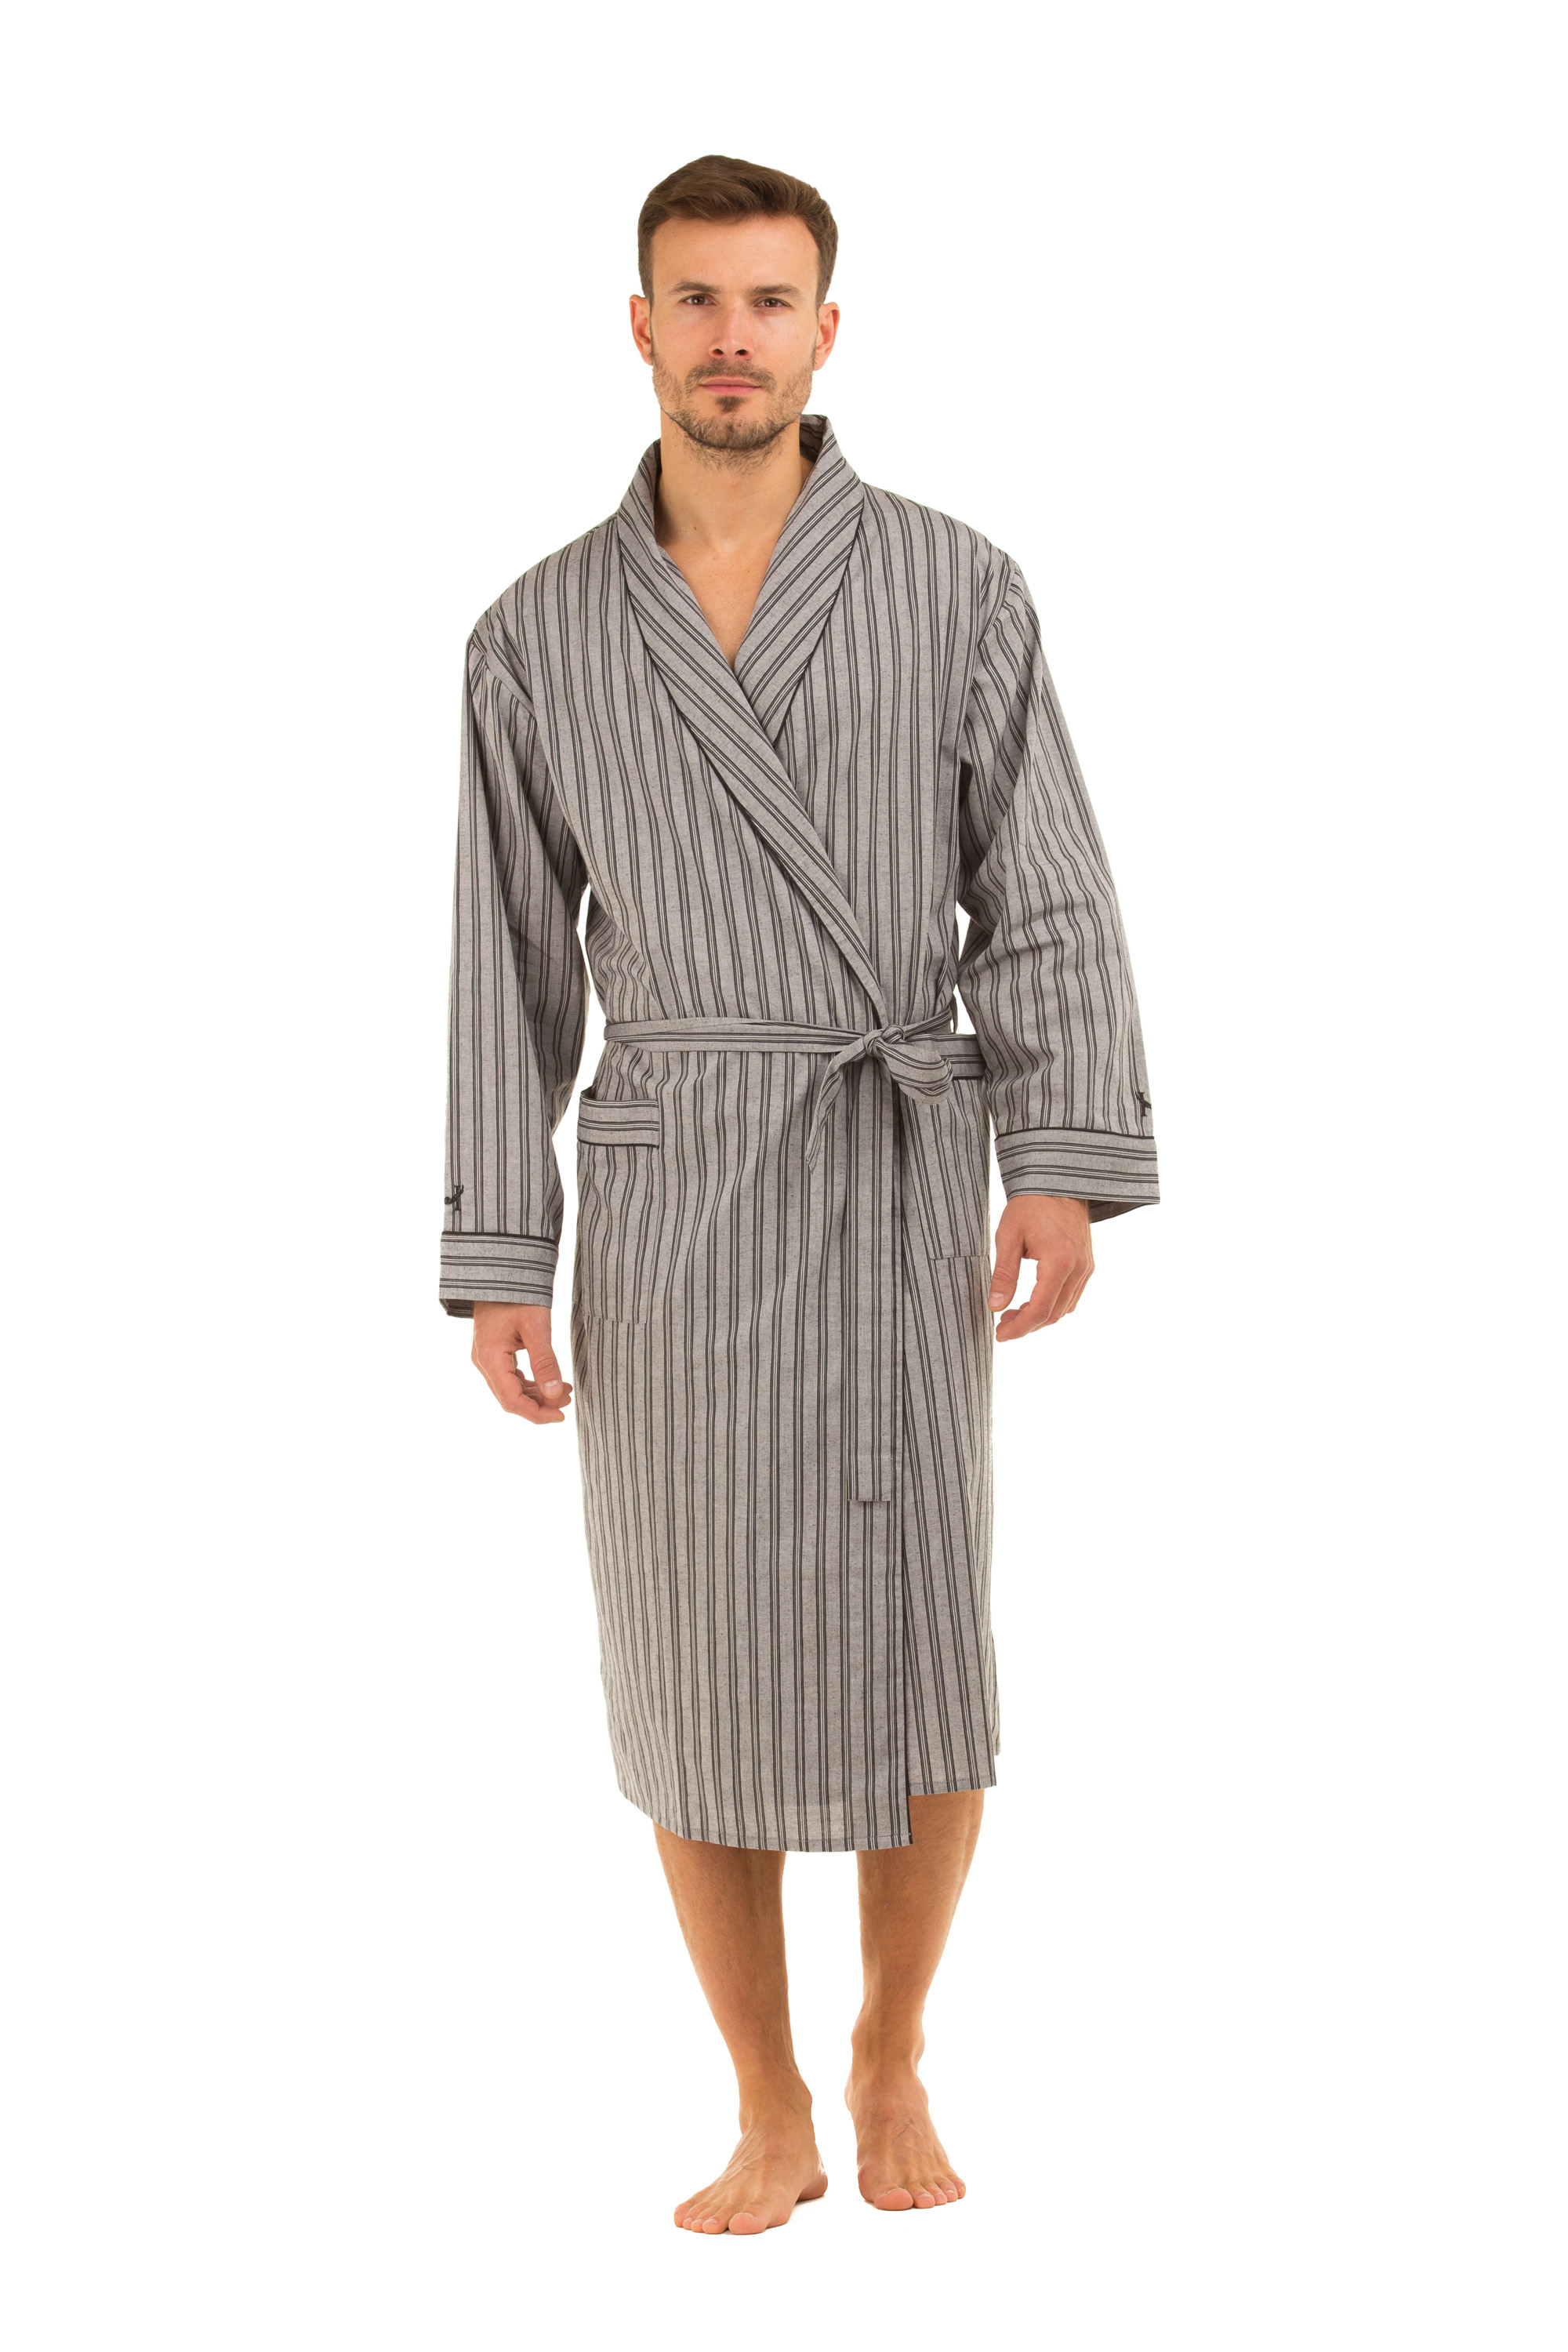 Haigman Men  39 s Cotton Dressing Gown Bath Robe Kimono . a6e204de7